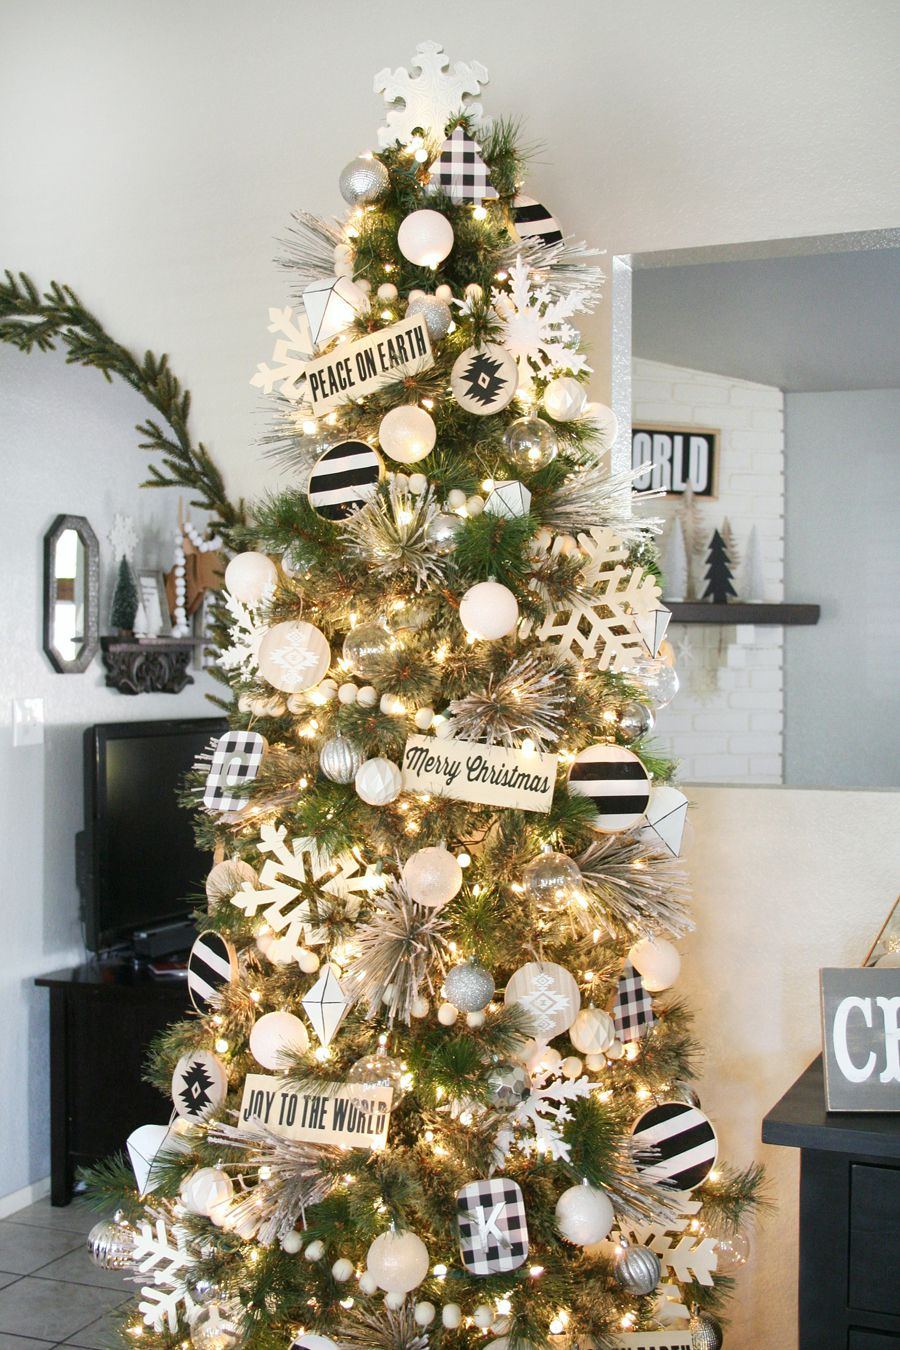 76 Best Christmas Tree Decorating Ideas - How to Decorate a